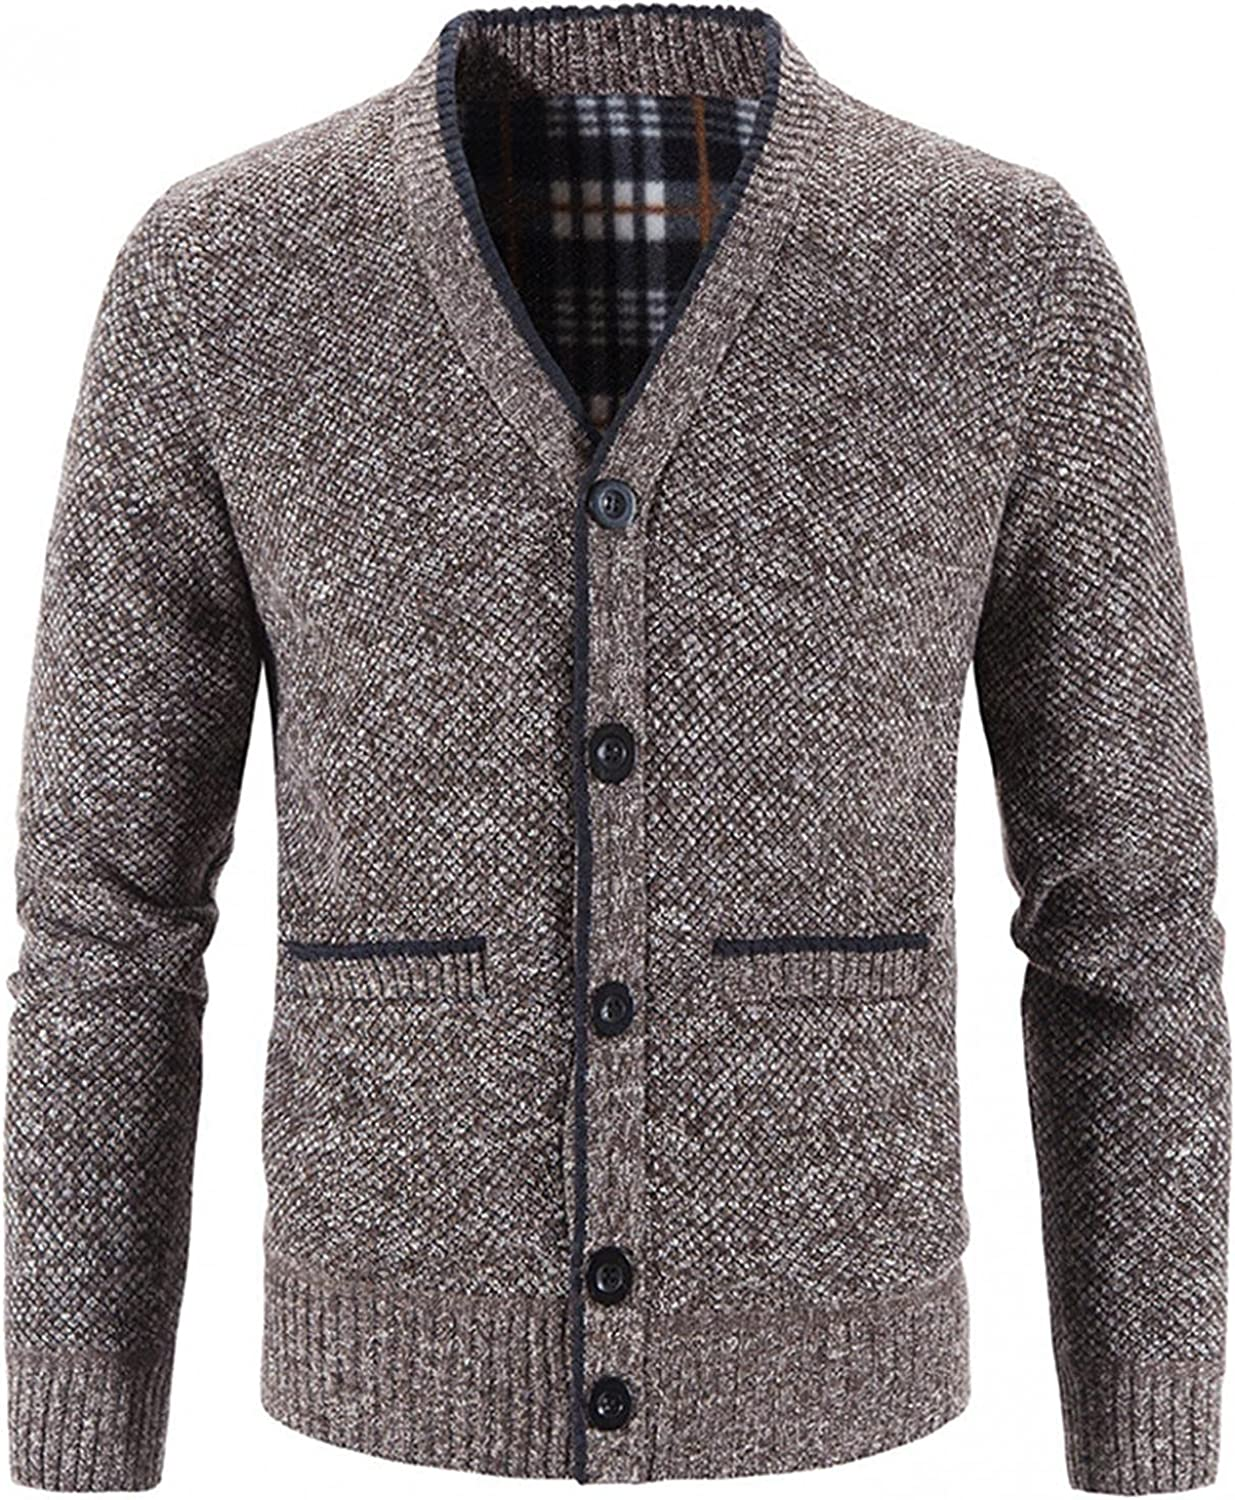 SUIQU Mens Knit Jacket Coat Autumn & Winter Solid Color Long Sleeve Button Pocket V-Neck Warm Cardigan Knitted Outwear